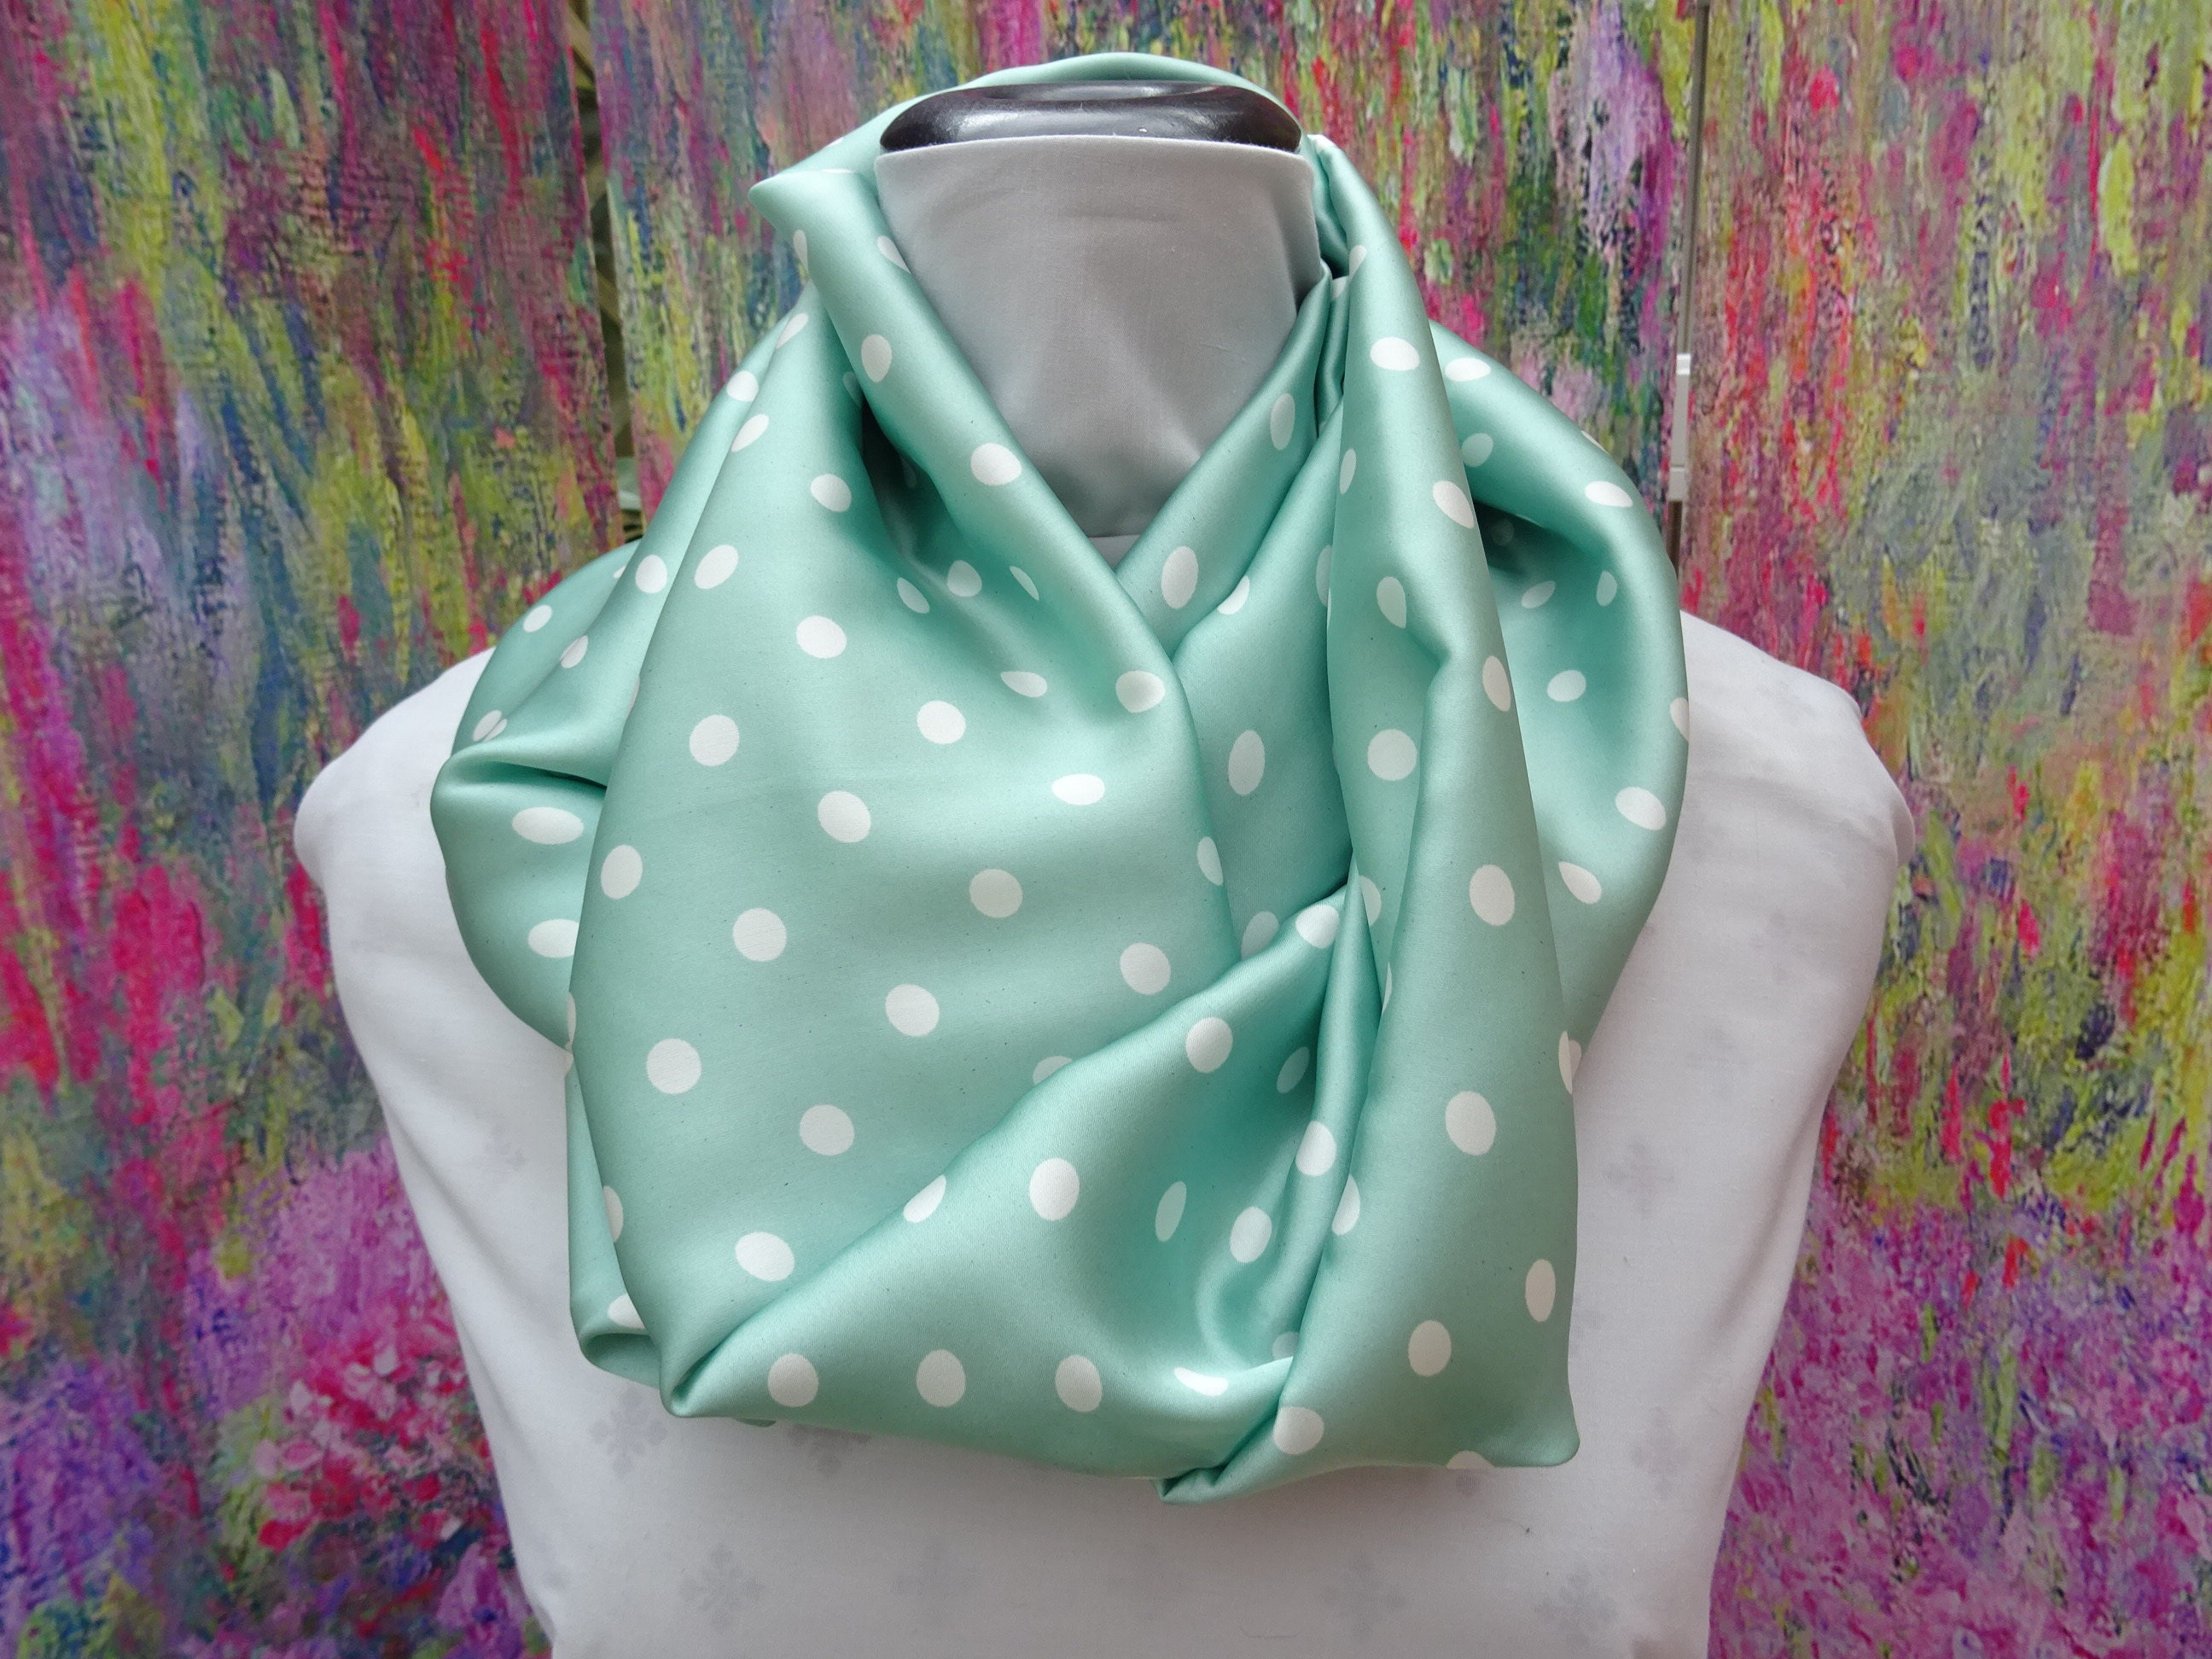 Infinity or long Satin Pale Lilac Polka Dot Scarf 51 inches